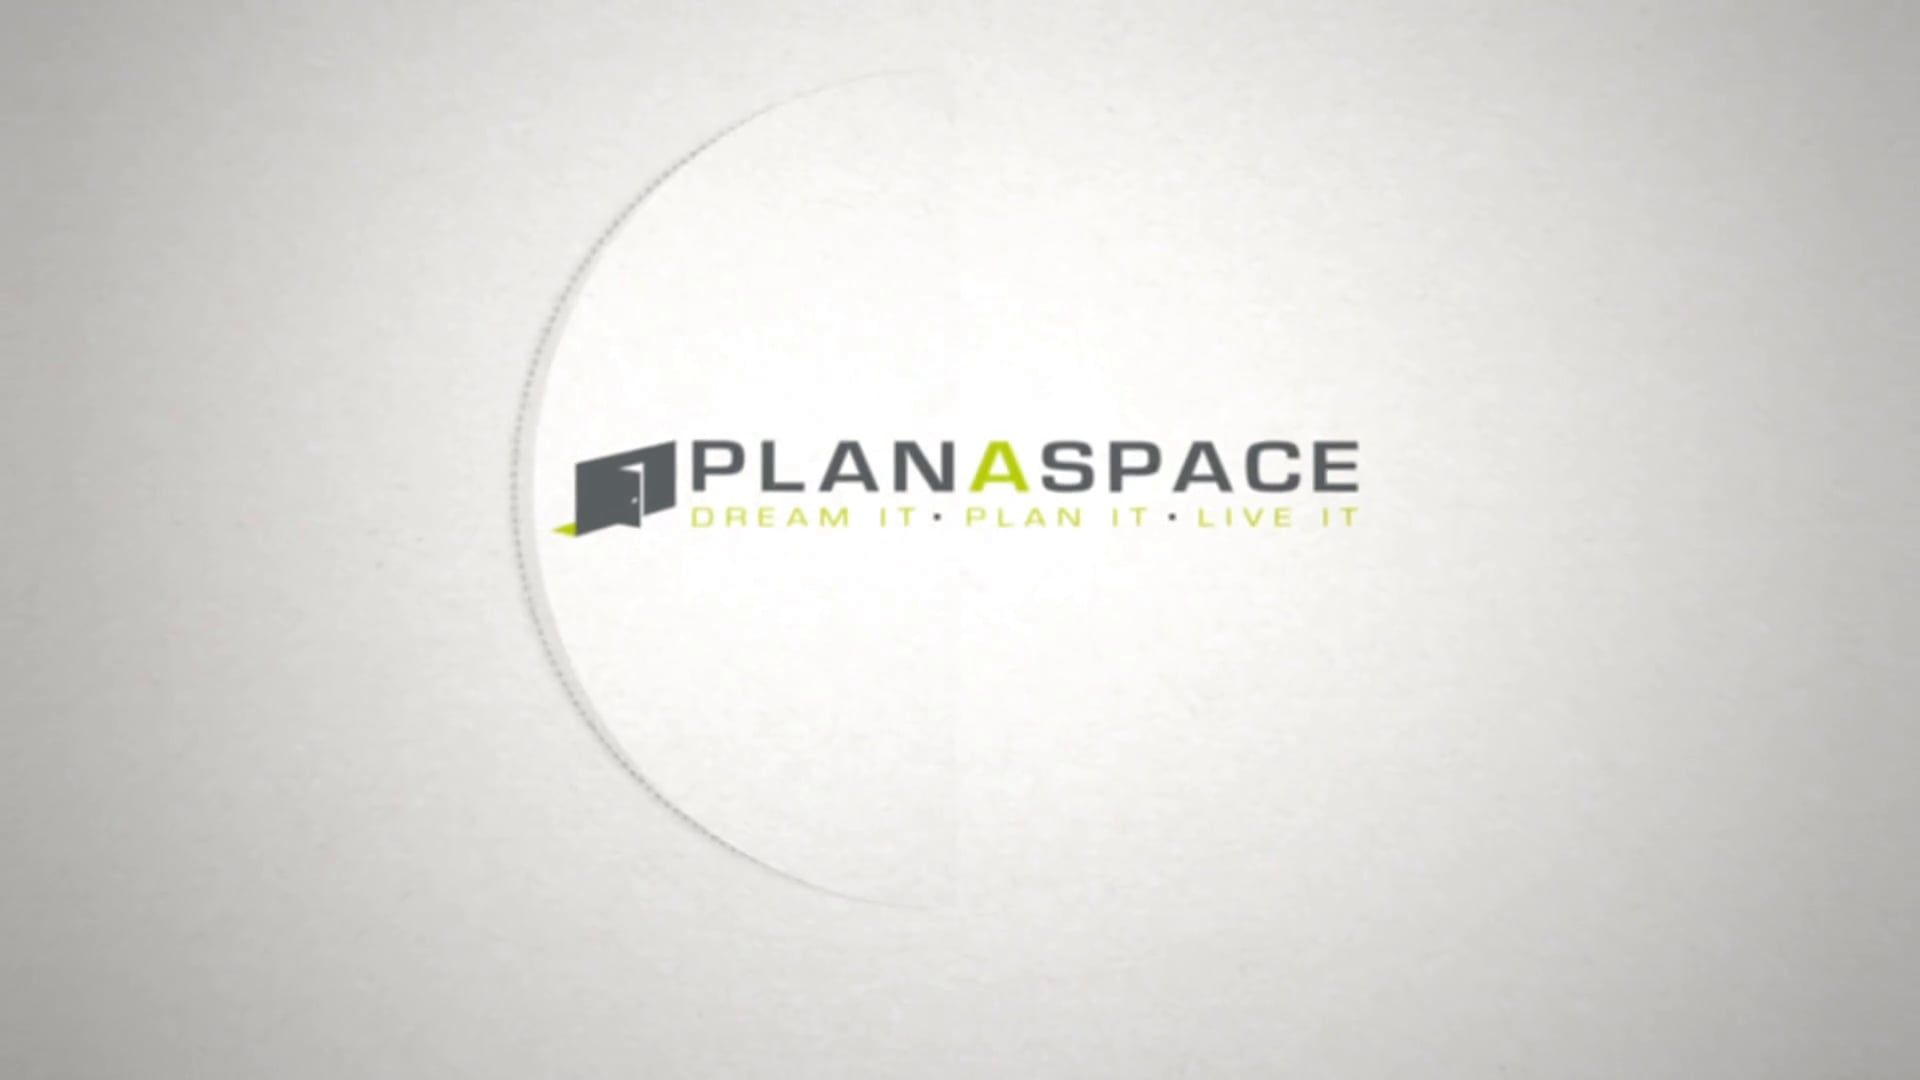 Plan A Space in Action!